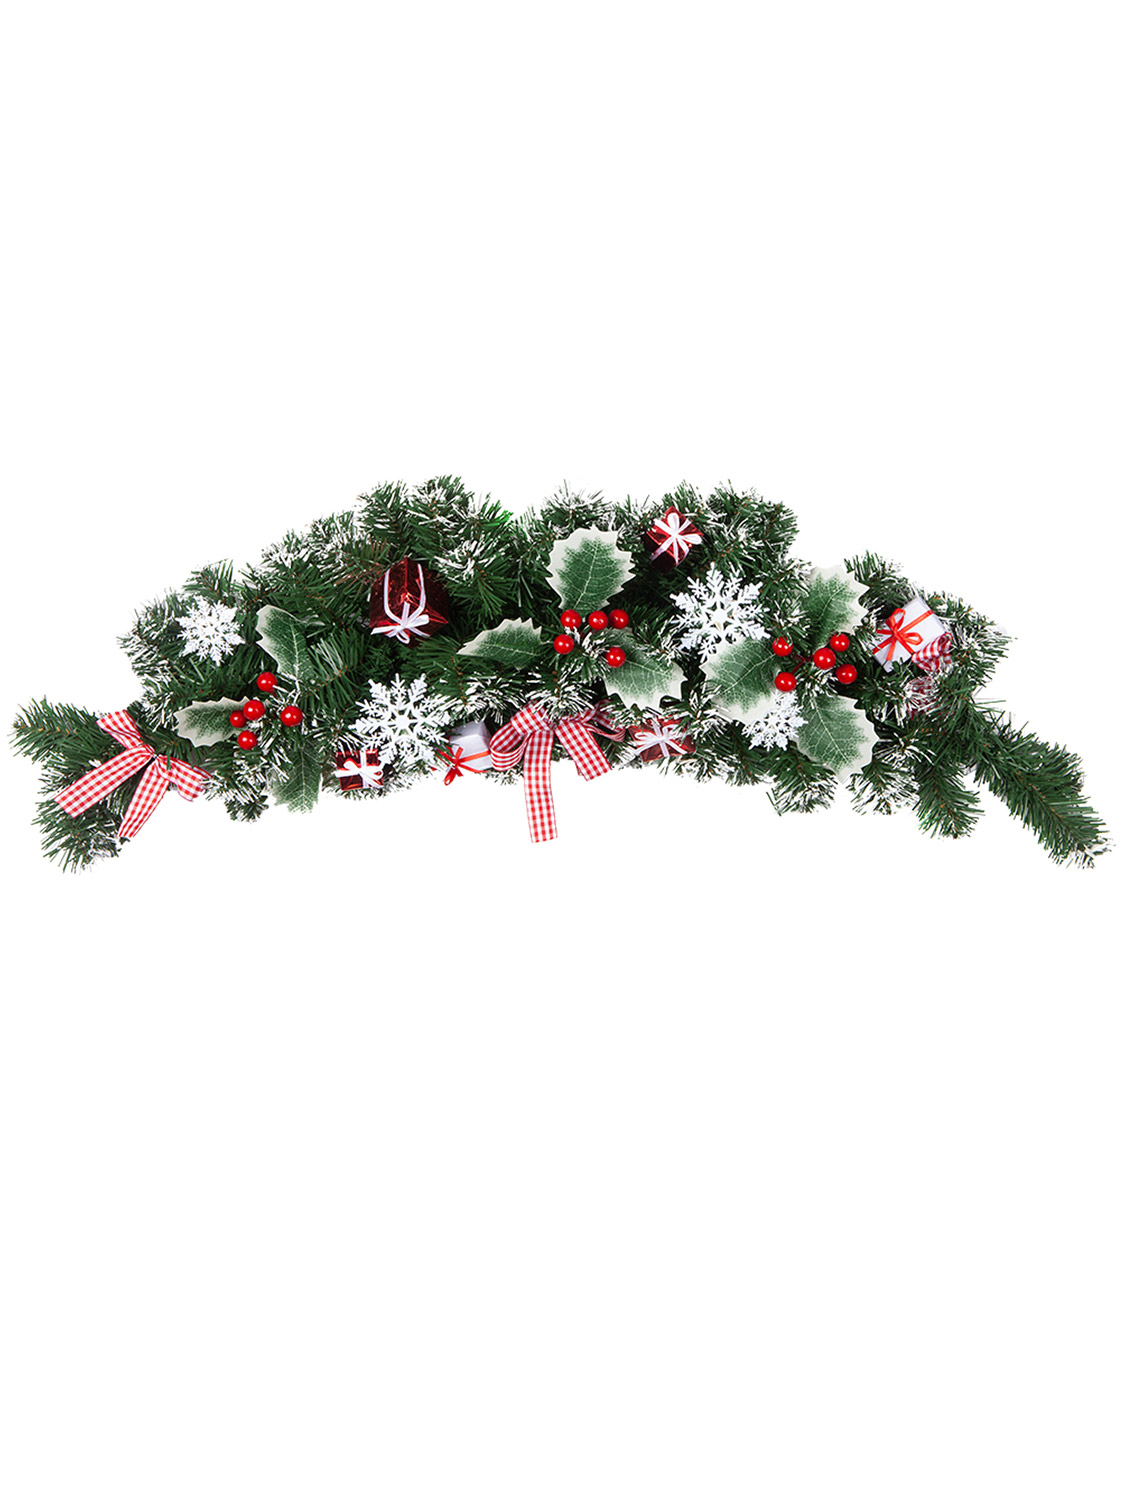 Christmas-Nordic-Wreath-Garland-Swag-Xmas-Scandi-Festive-Door-Mantle-Decoration thumbnail 16